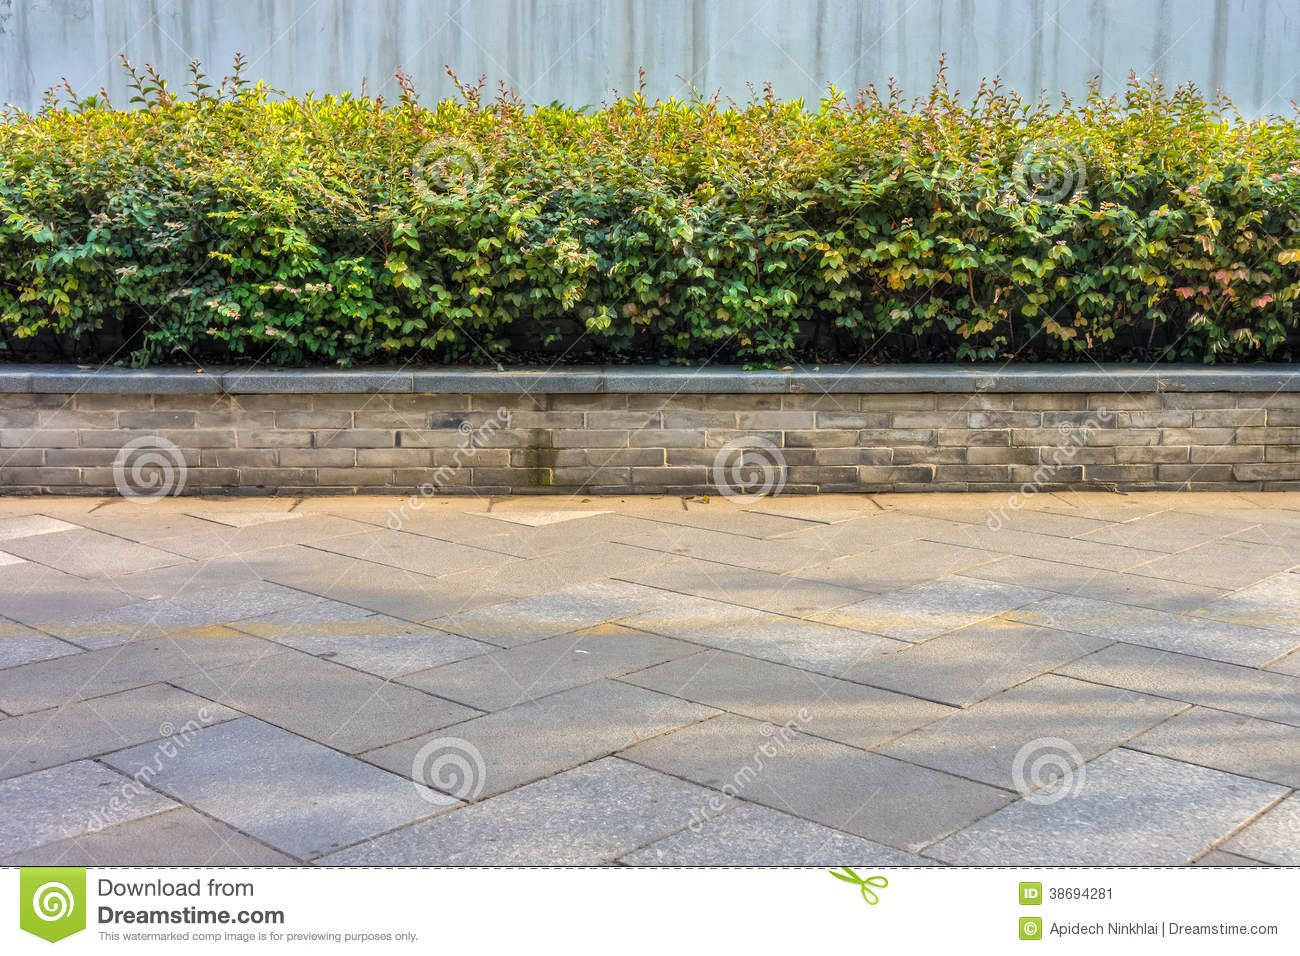 A decorative plants at sidewalk stock image image 38694281 for Garden city trees